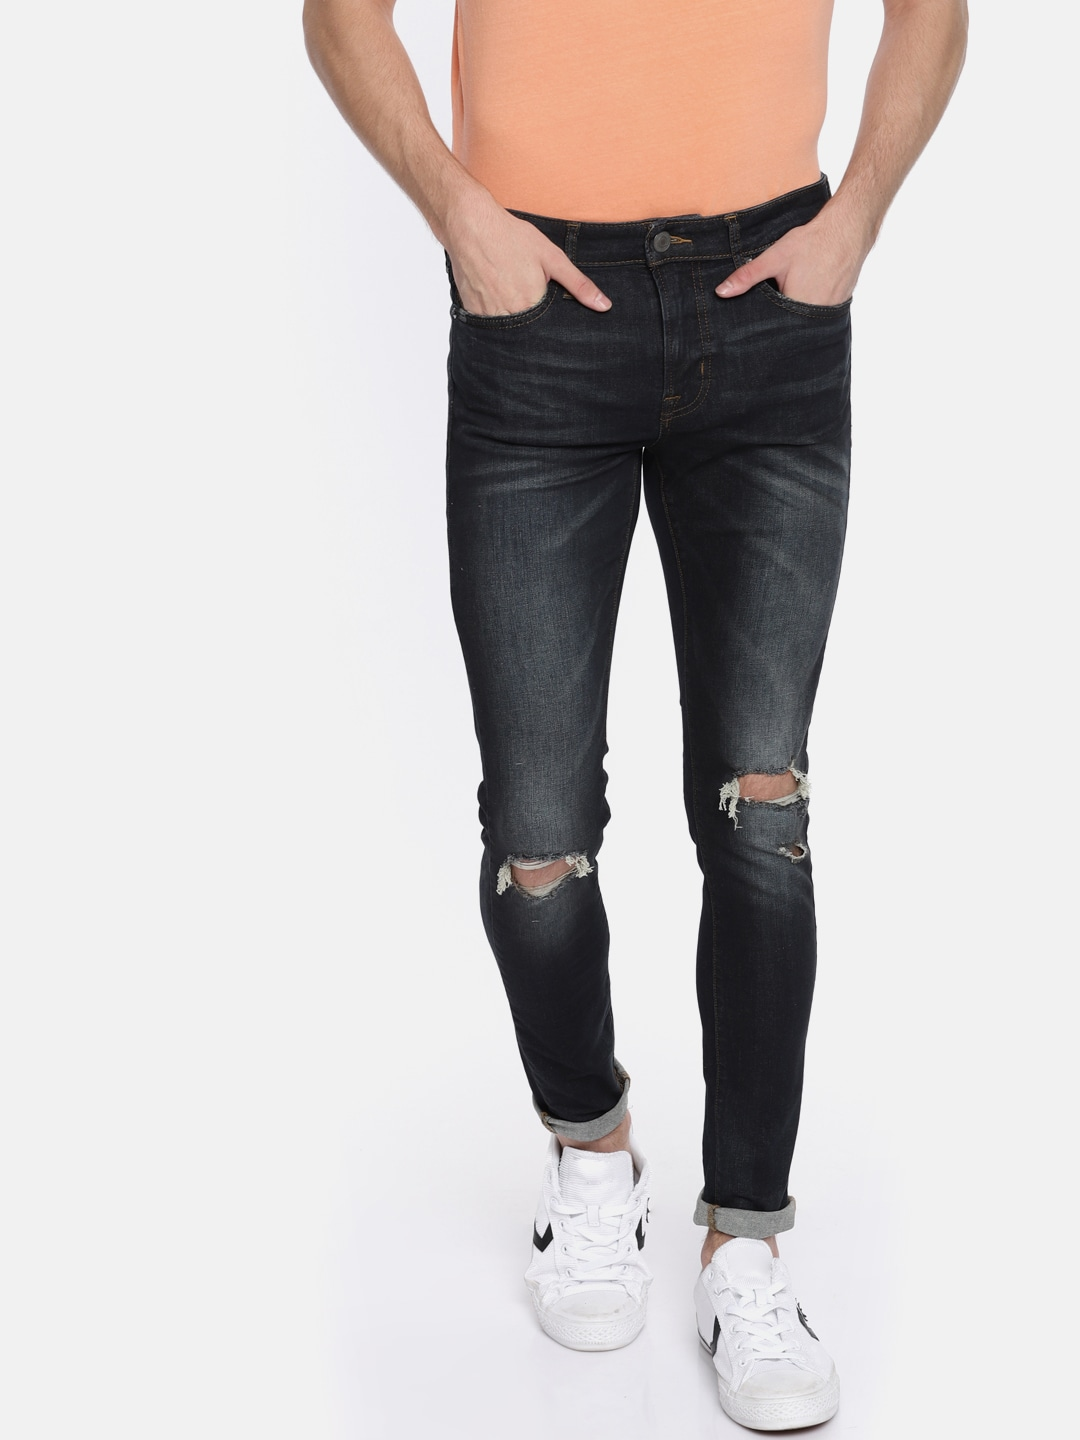 9cd62caeb7a I Wand To See Ripped Jeans Rompers - Buy I Wand To See Ripped Jeans Rompers  online in India